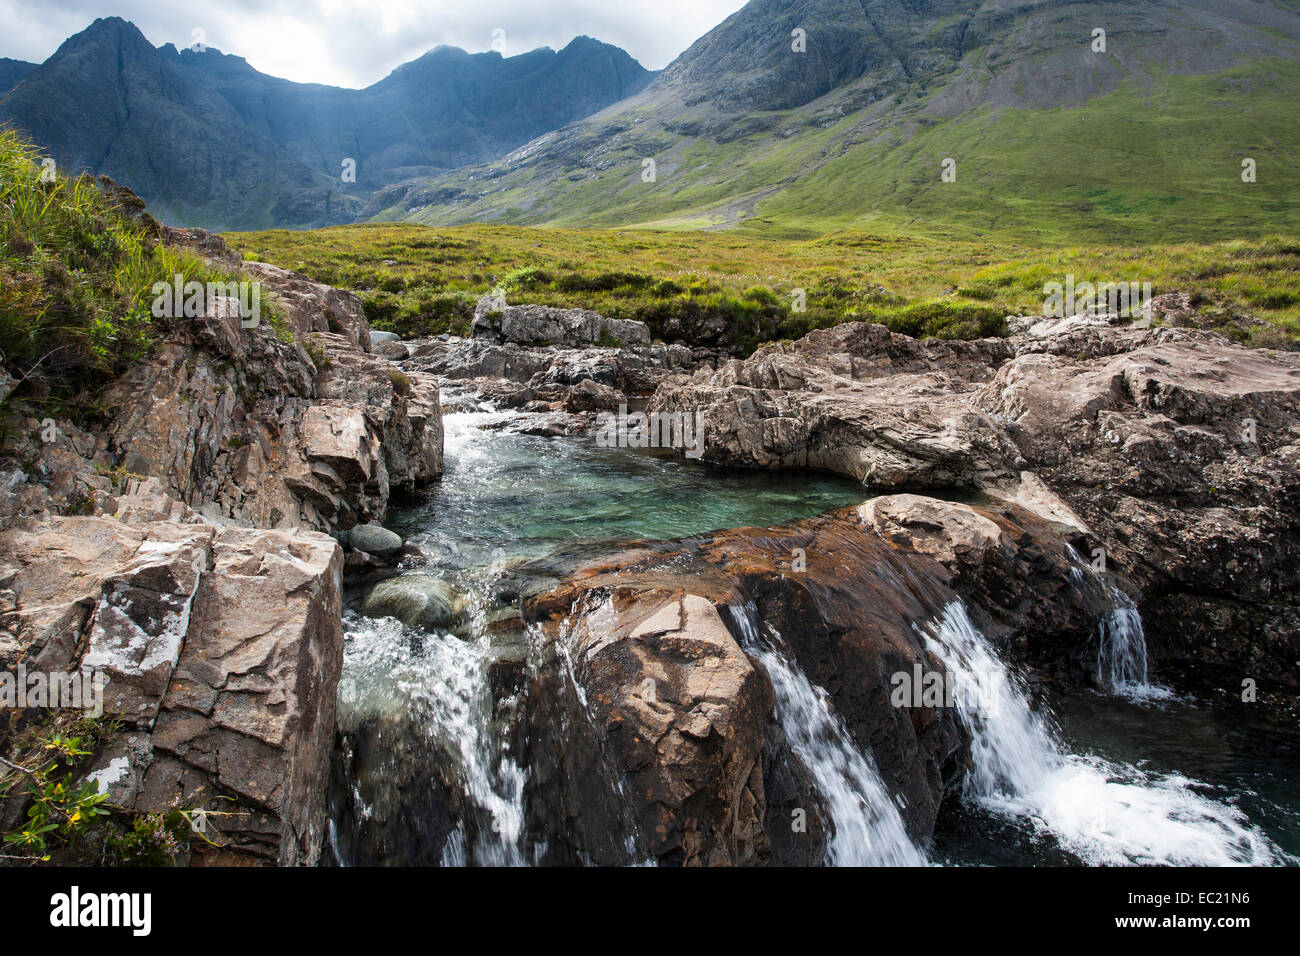 The Fairy Pools in Glen Brittle with Cuillin Hills behind, Isle of Skye, Scotland, United Kingdom - Stock Image